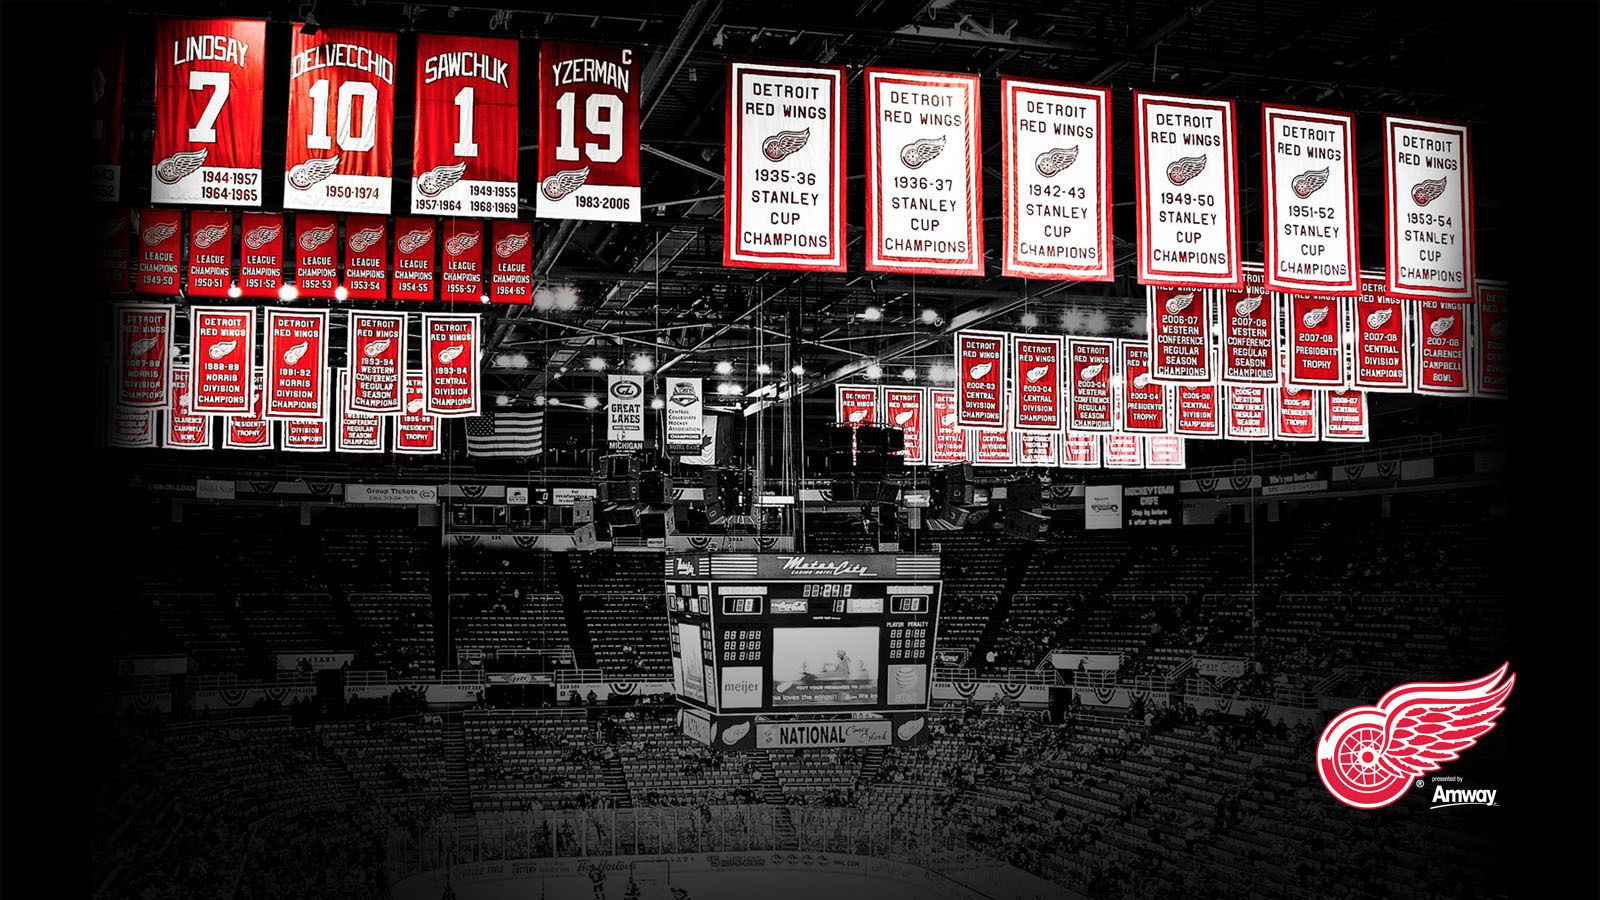 sweetcaroline Detroit-red-wings-wallpaper-38